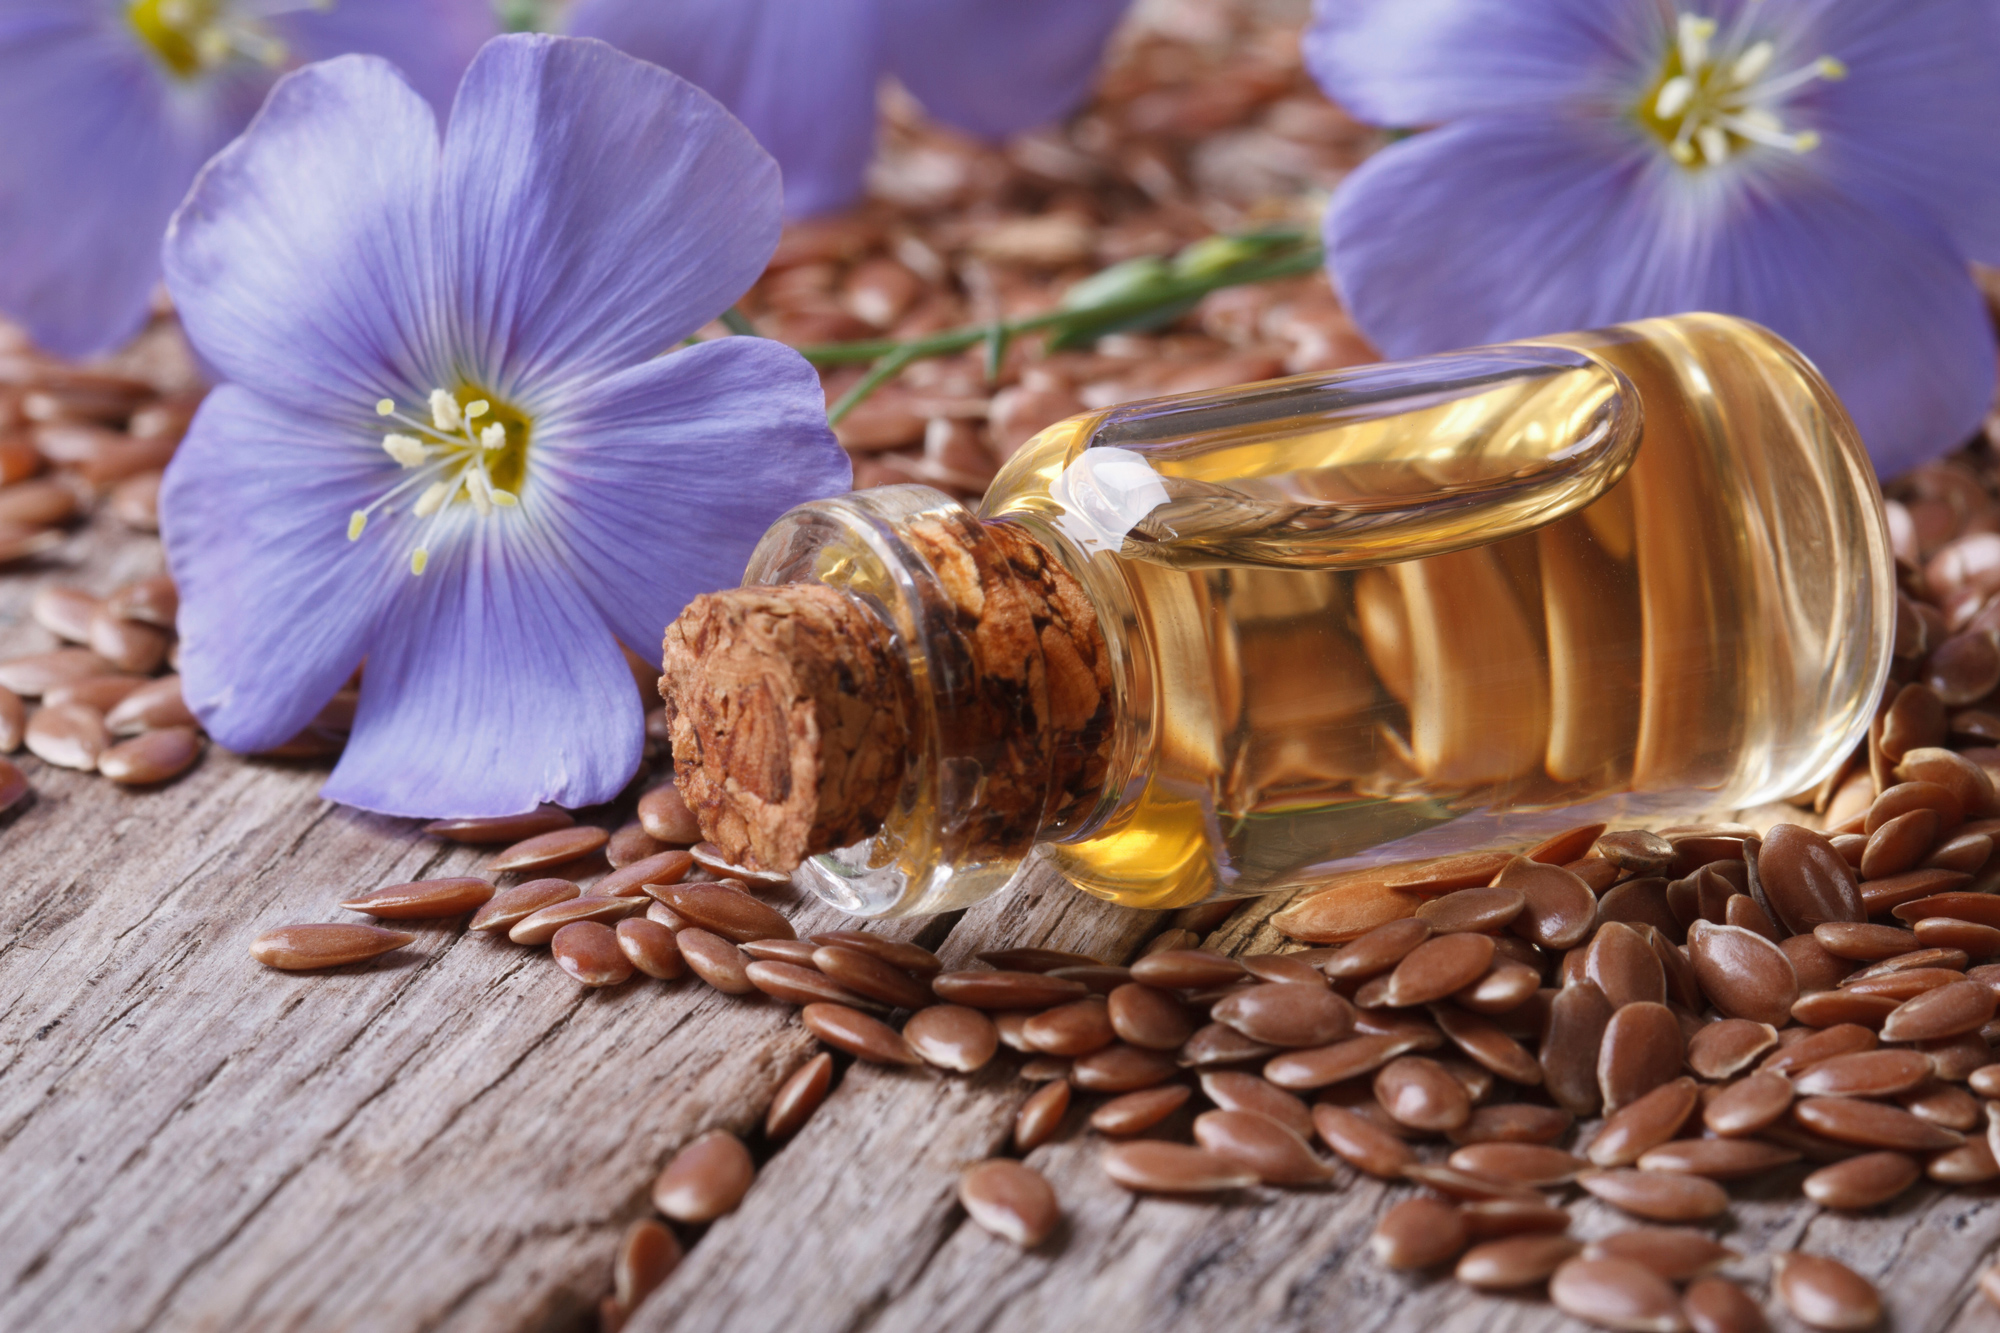 Linseed Oil A Natural Solution For Wood Finishing